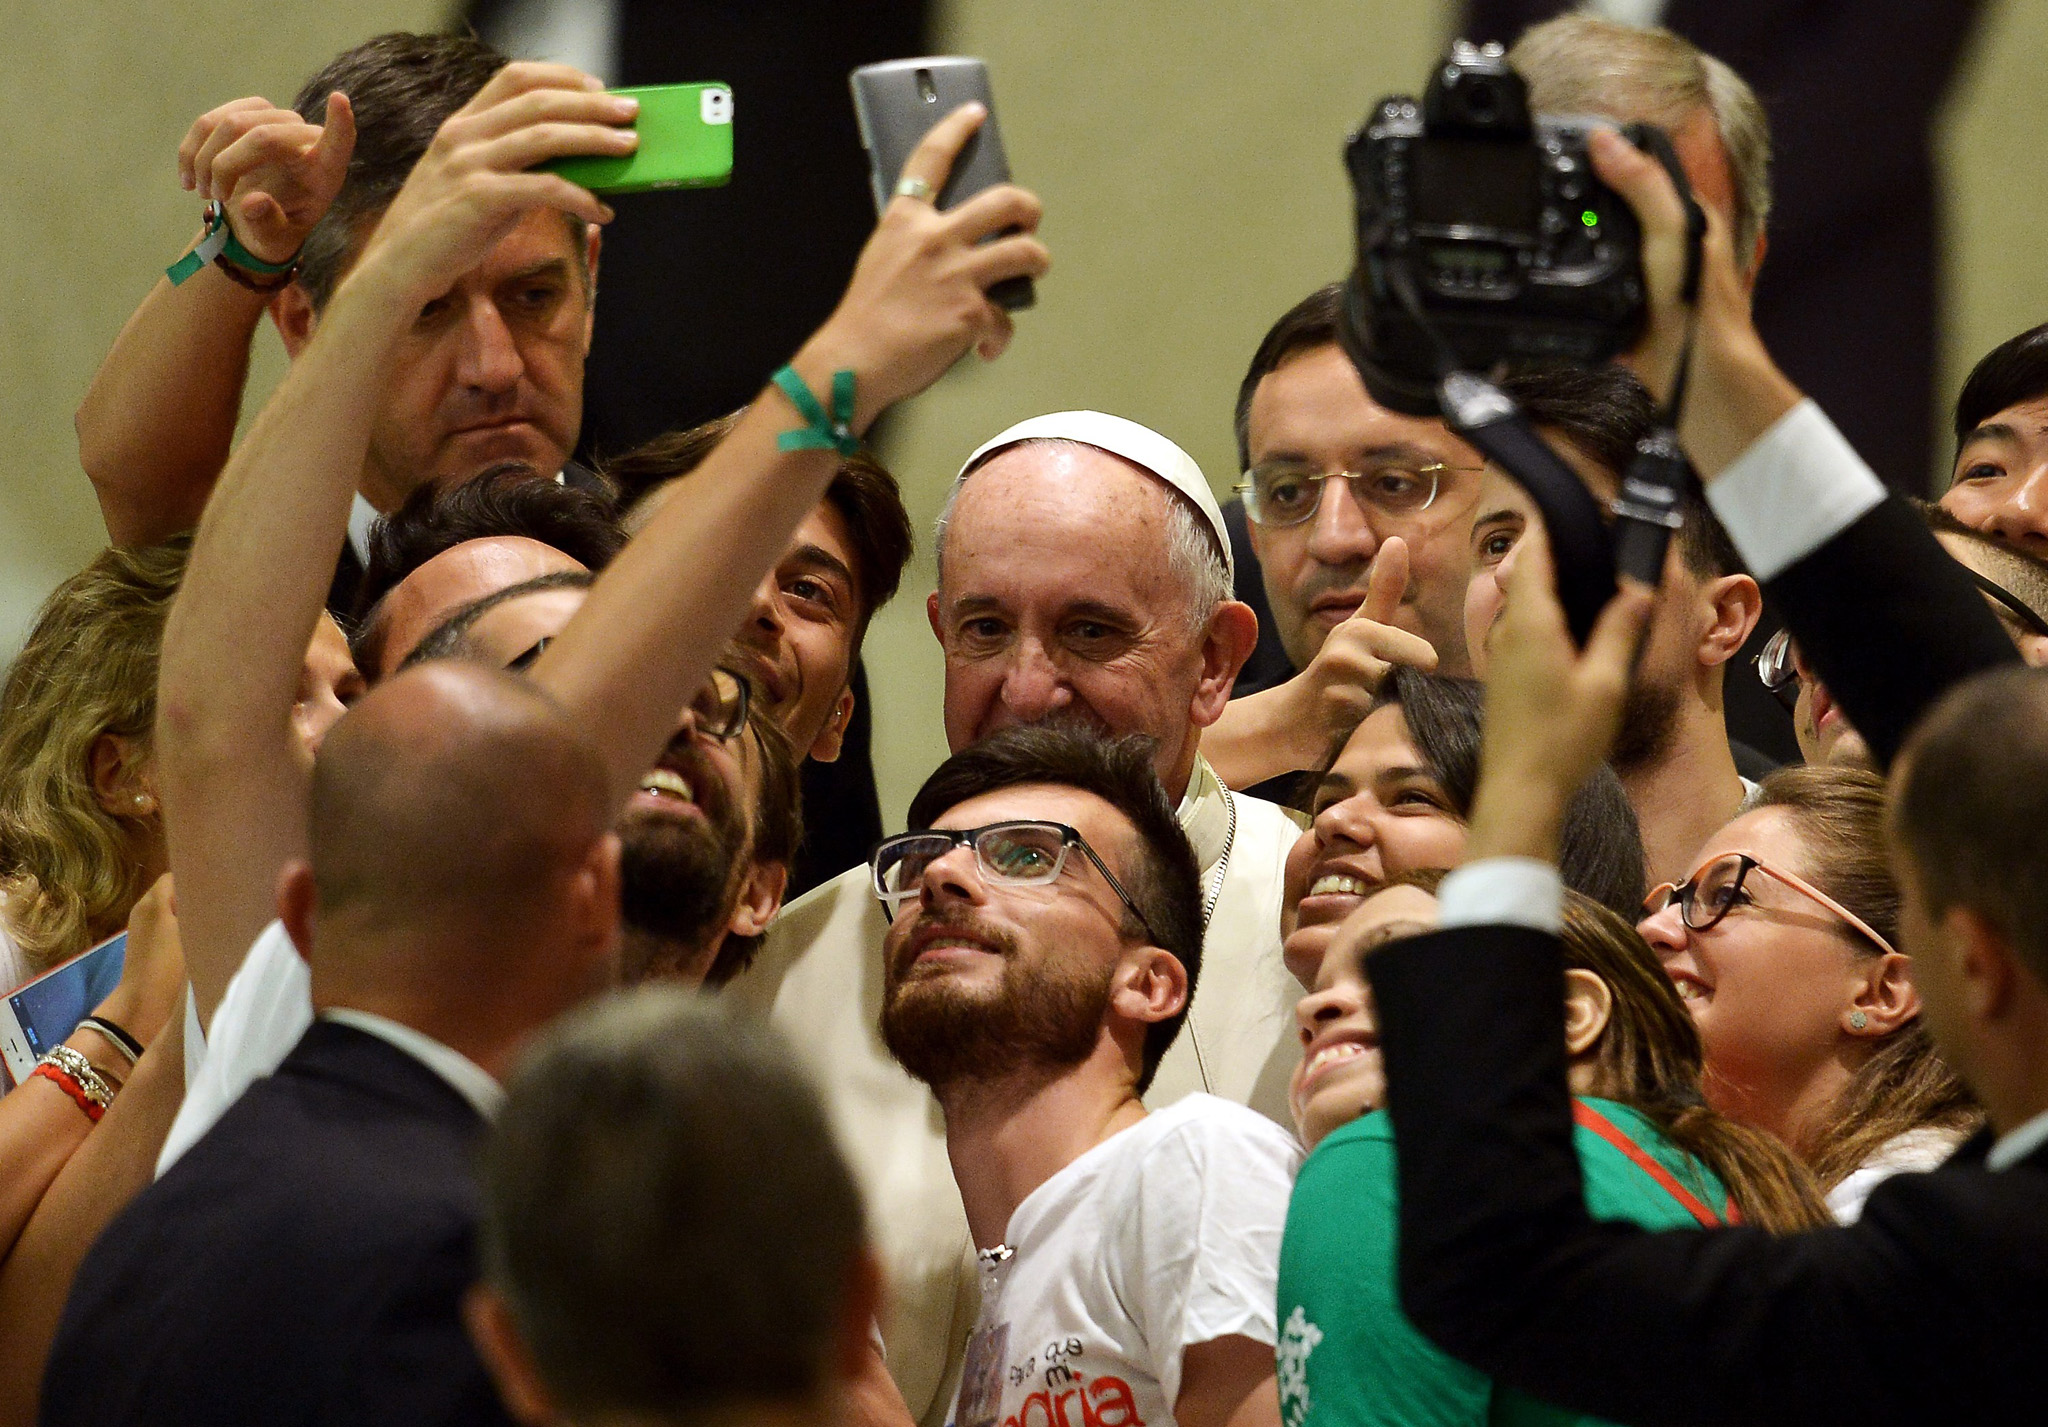 Pope Francis takes a selfie with a group of people during a meeting with the Youth Eucharistic Movement in the Paul VI hall at the Vatican.